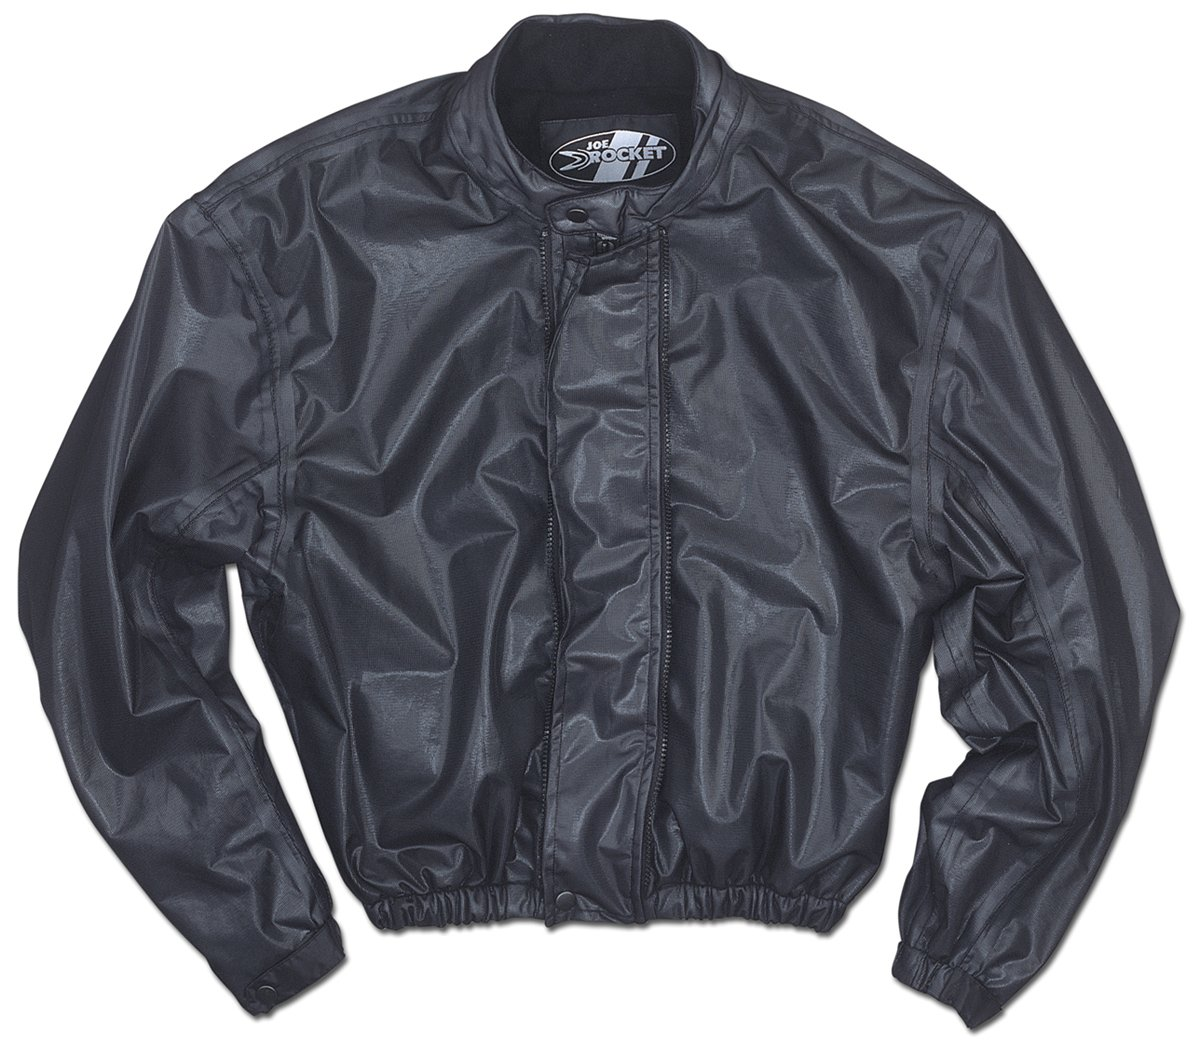 Joe Rocket Drytech Liner Men's Textile Sports Bike Racing Motorcycle Jacket - Black / Large